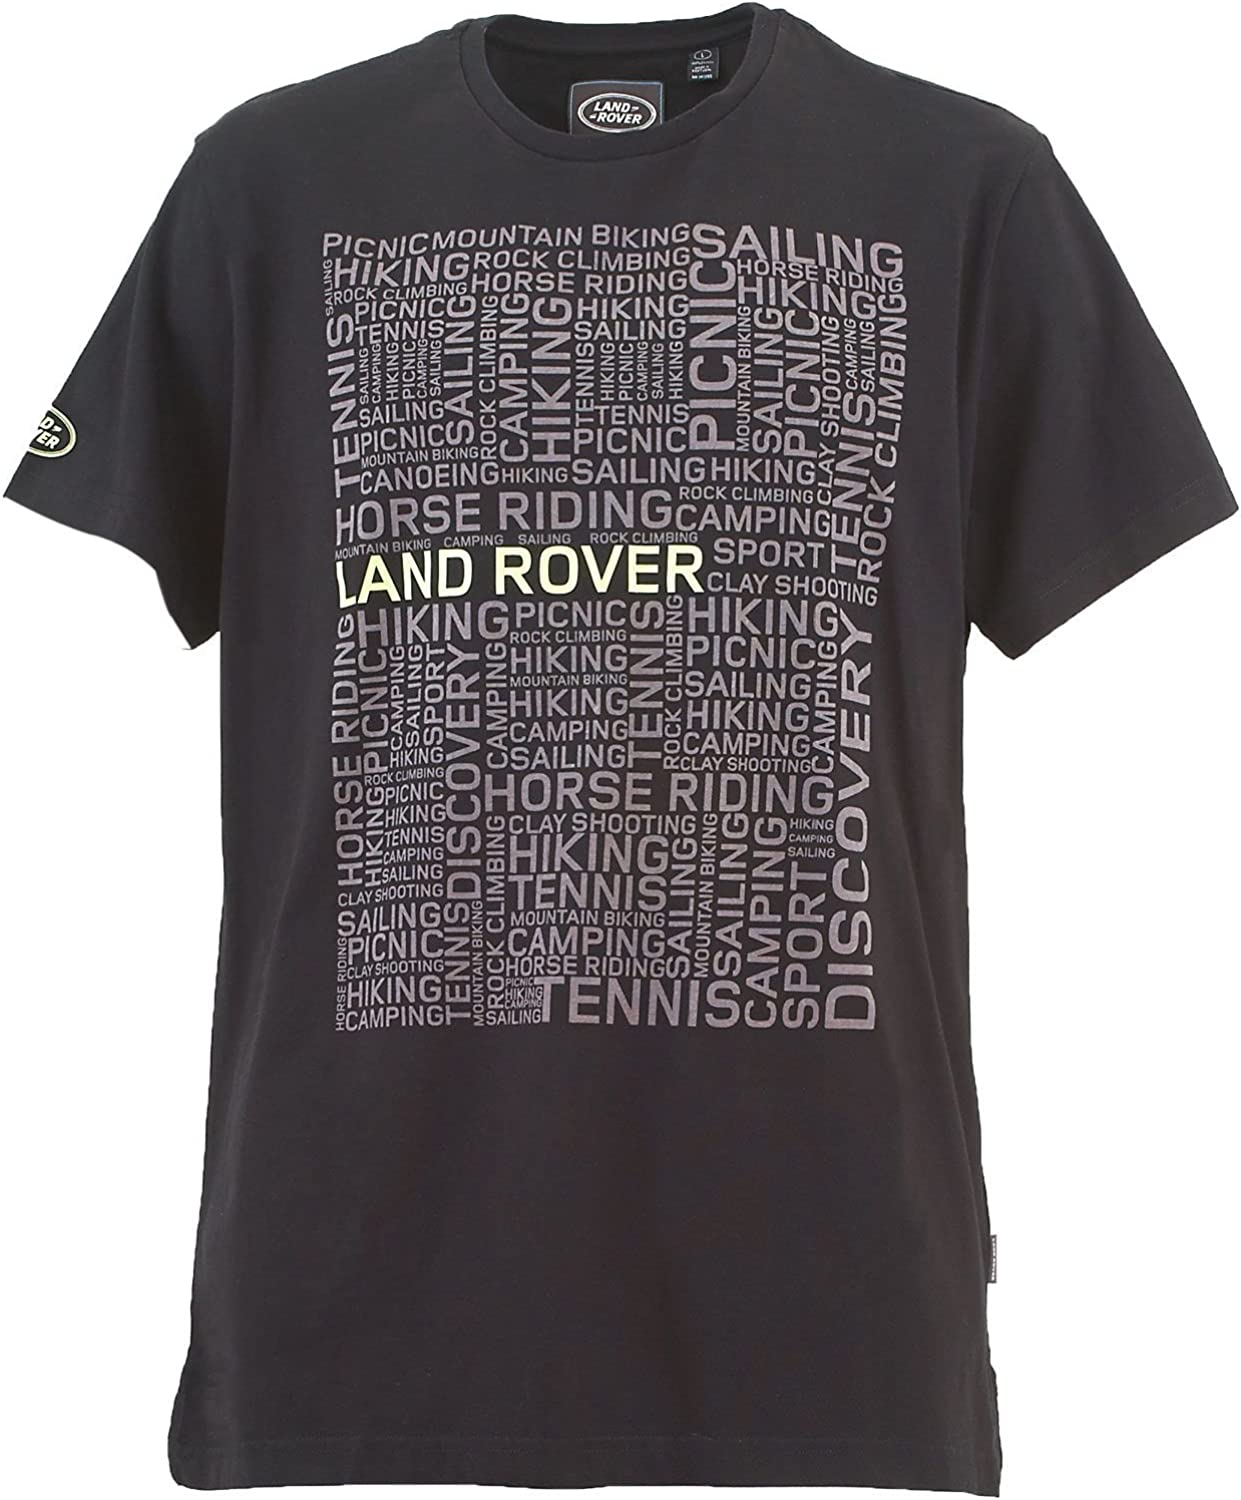 Personalised number plate available Land Rover Series 1 The Original T-shirt